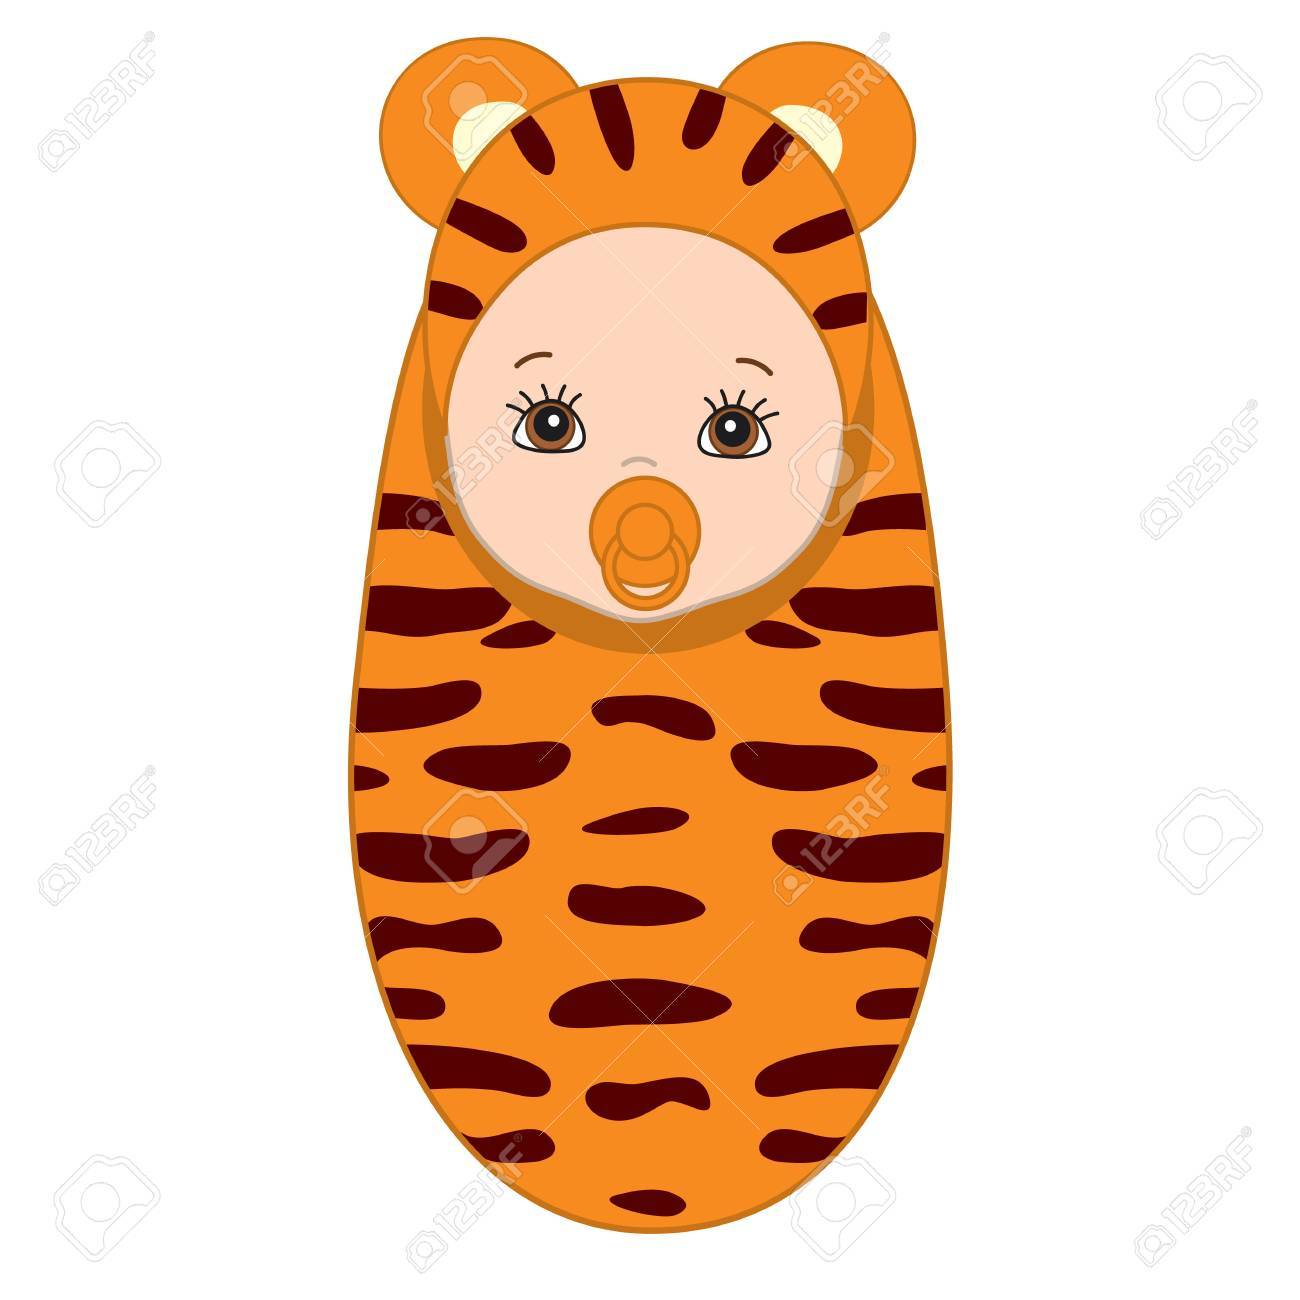 vector cute baby wrapped in blanket with tiger pattern baby rh 123rf com Tiger Girl Wallpaper Tiger Clip Art Girls Playing